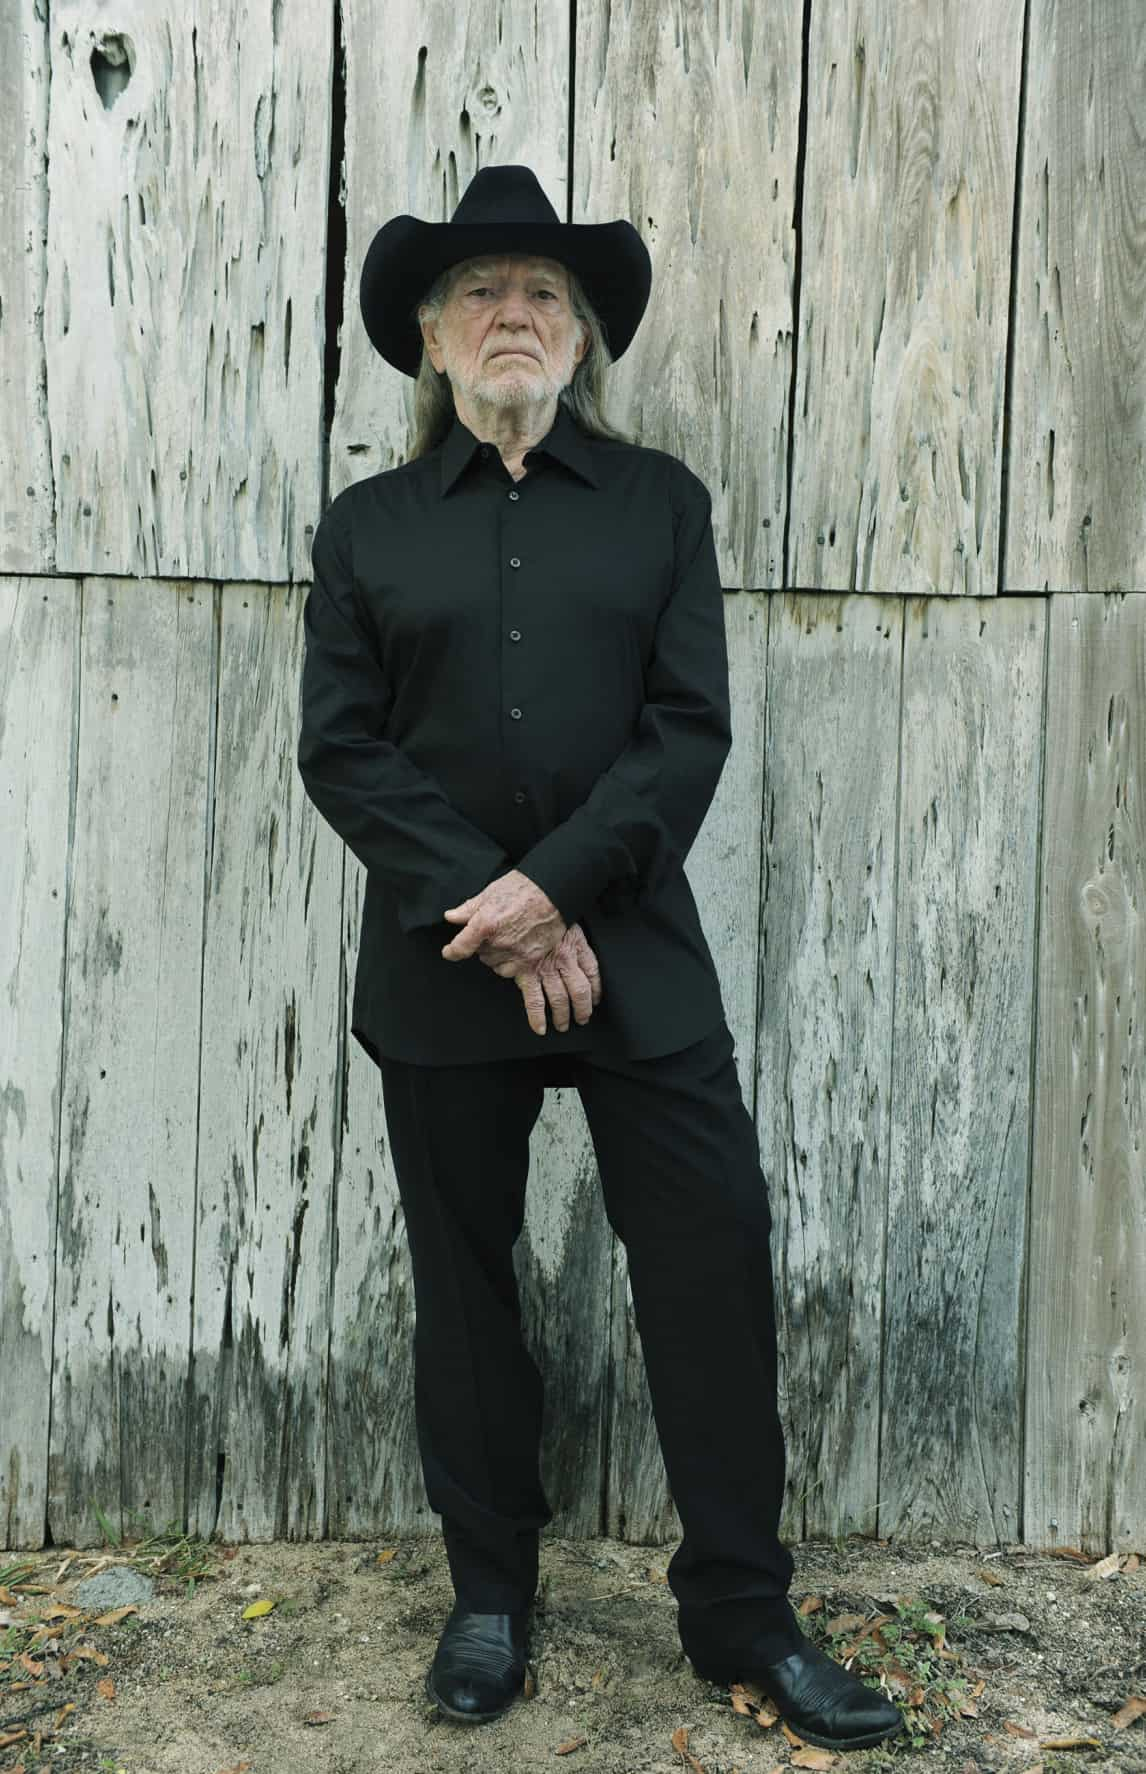 ff2f0c9f0bc Willie Nelson   Family And Alison Krauss - Edgefield Concerts